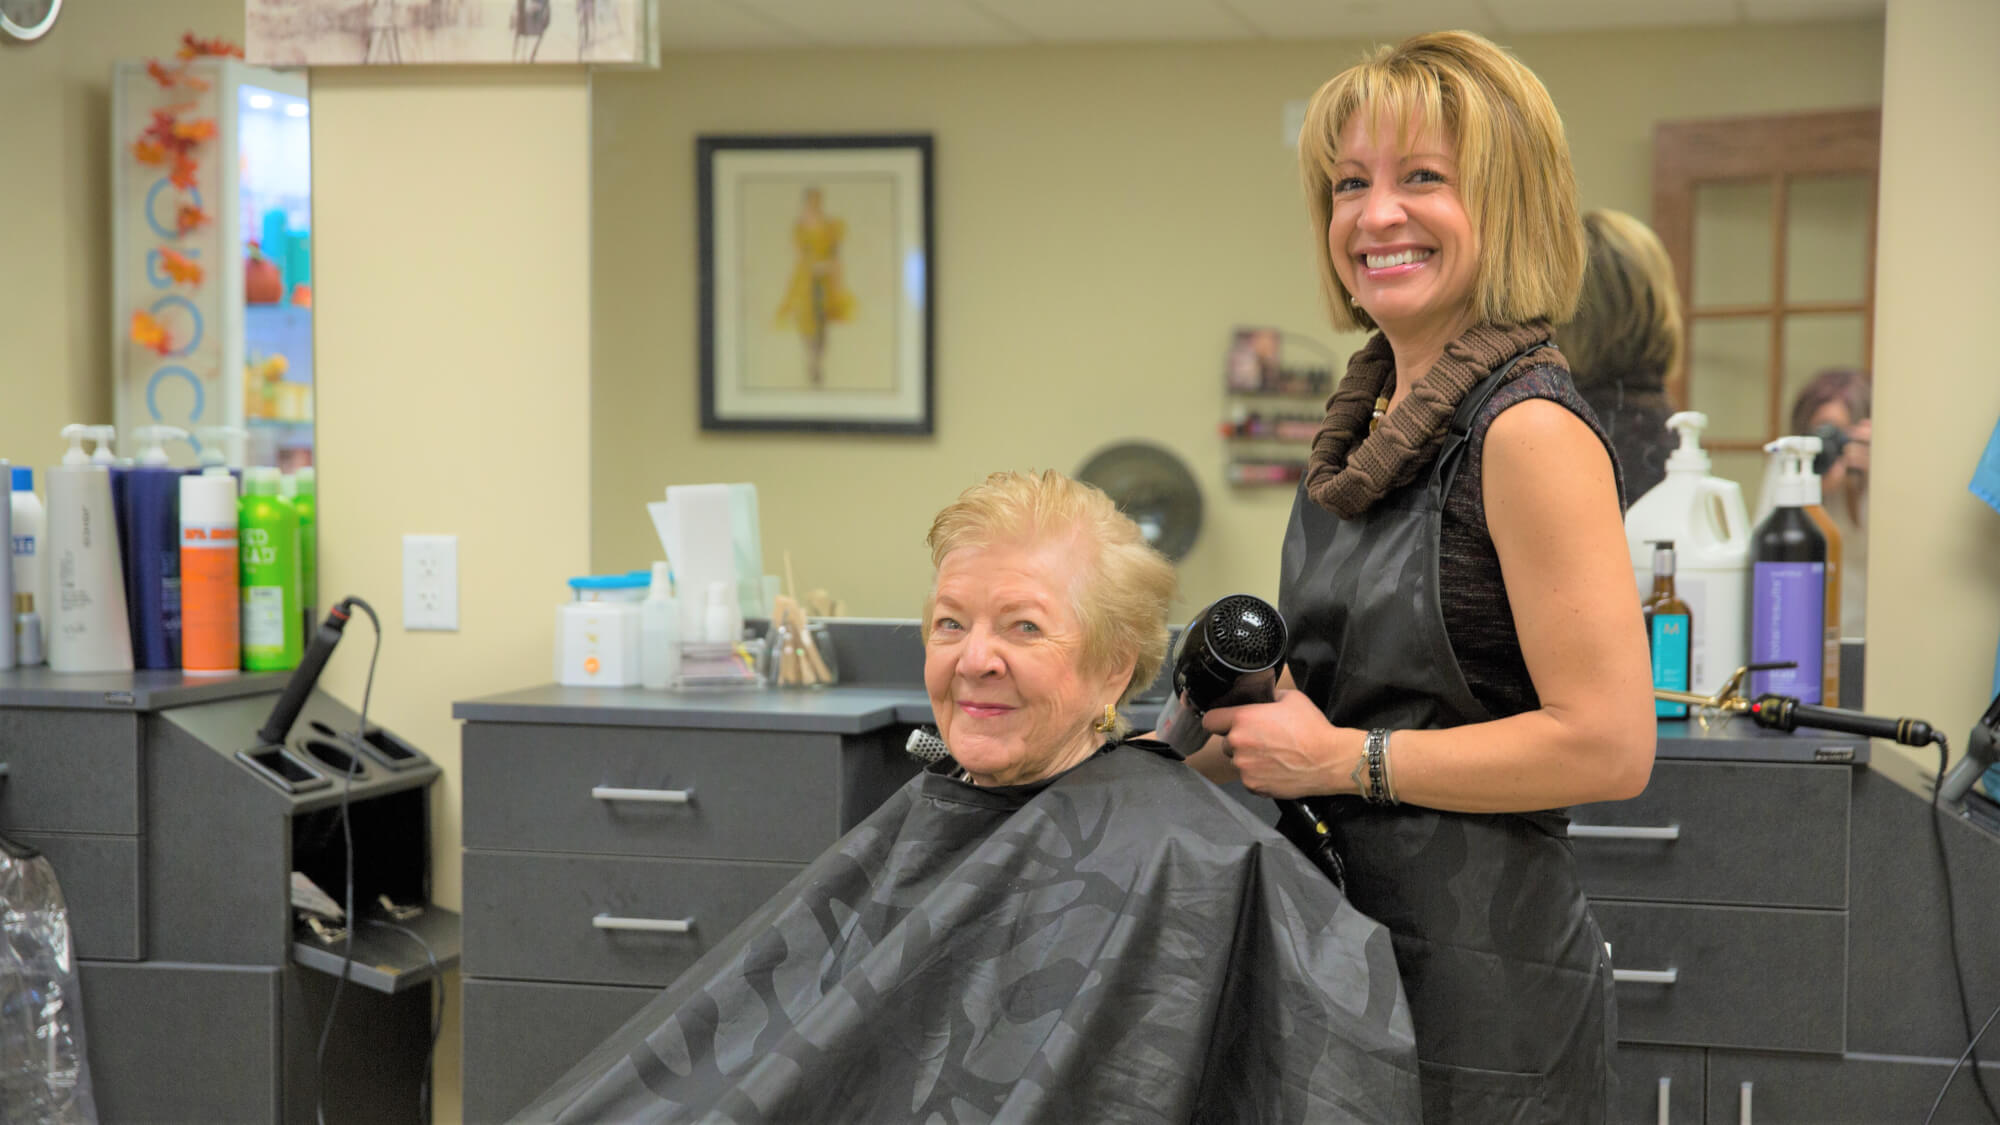 Resident getting her hair done in the full-service hair salon at Coronado Villa